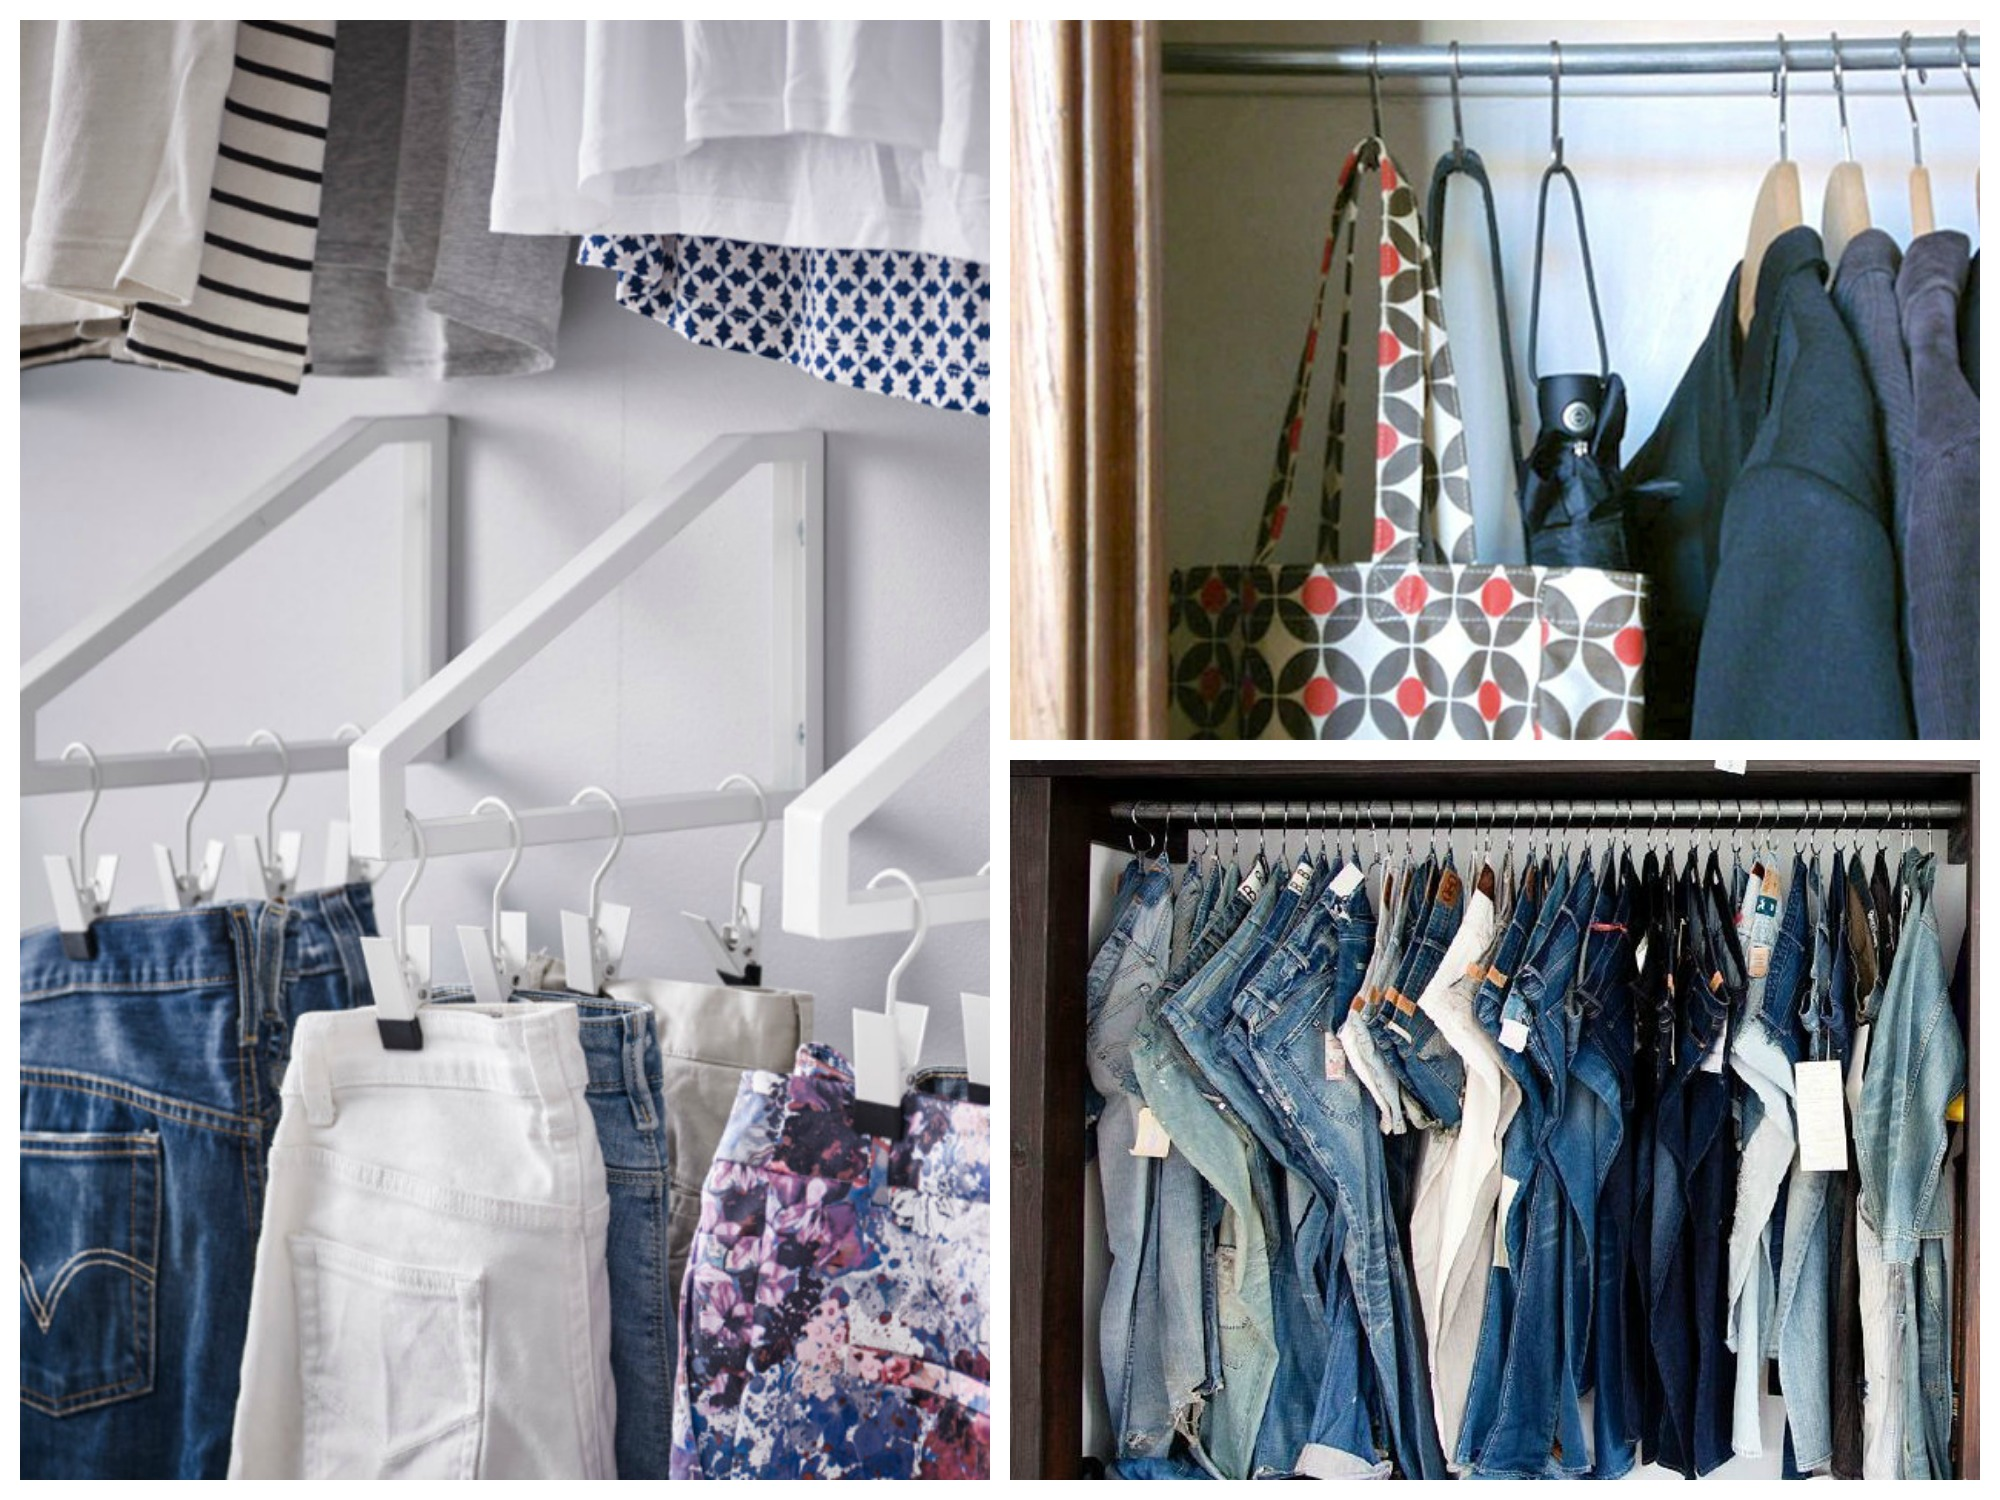 Closet Organization 9 Closet Organization Hacks That Are Brilliantly Easy